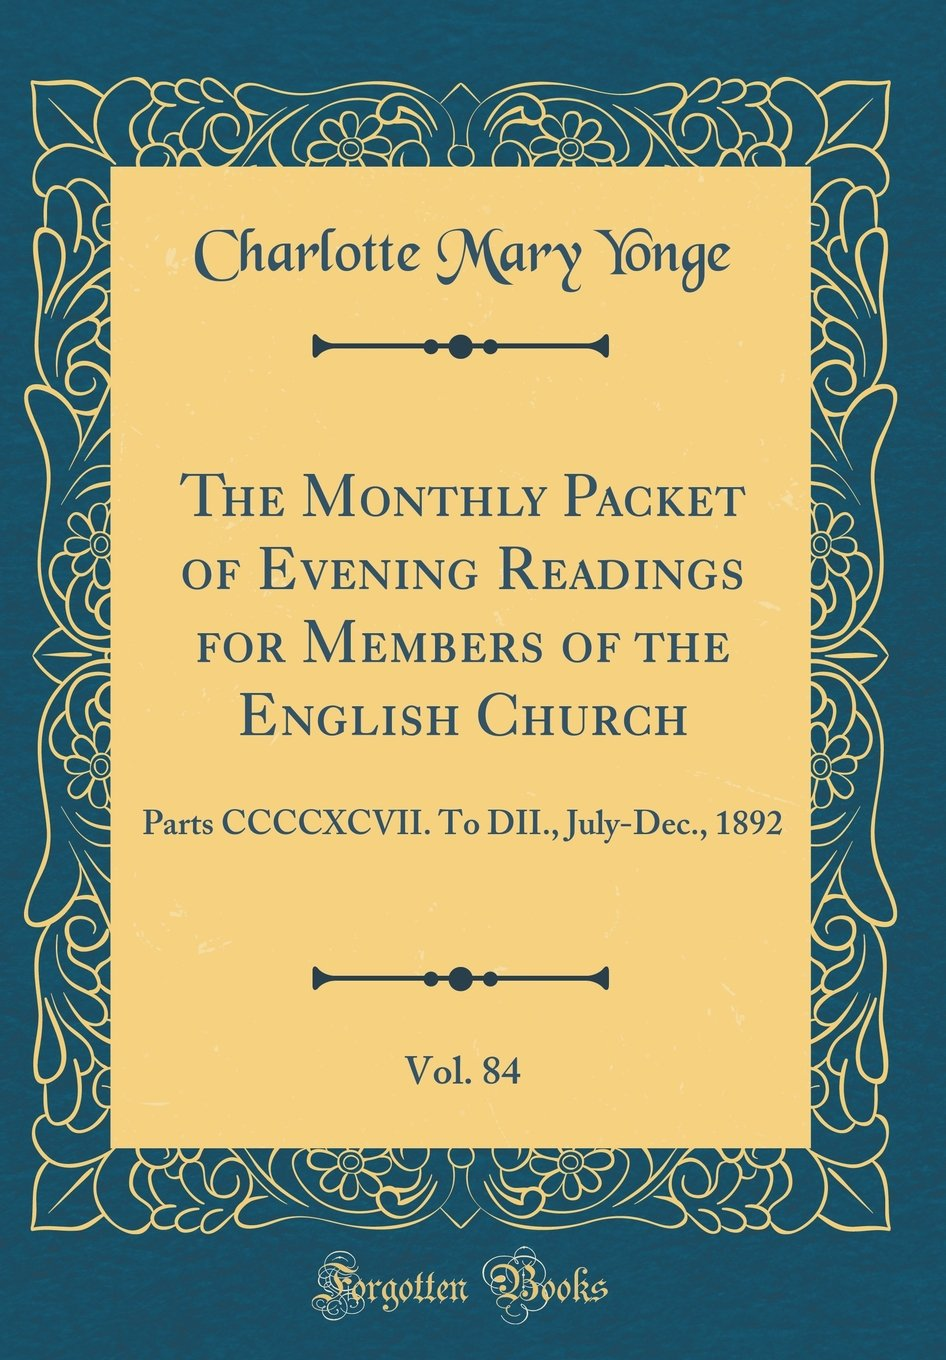 Download The Monthly Packet of Evening Readings for Members of the English Church, Vol. 84: Parts CCCCXCVII. to DII., July-Dec., 1892 (Classic Reprint) pdf